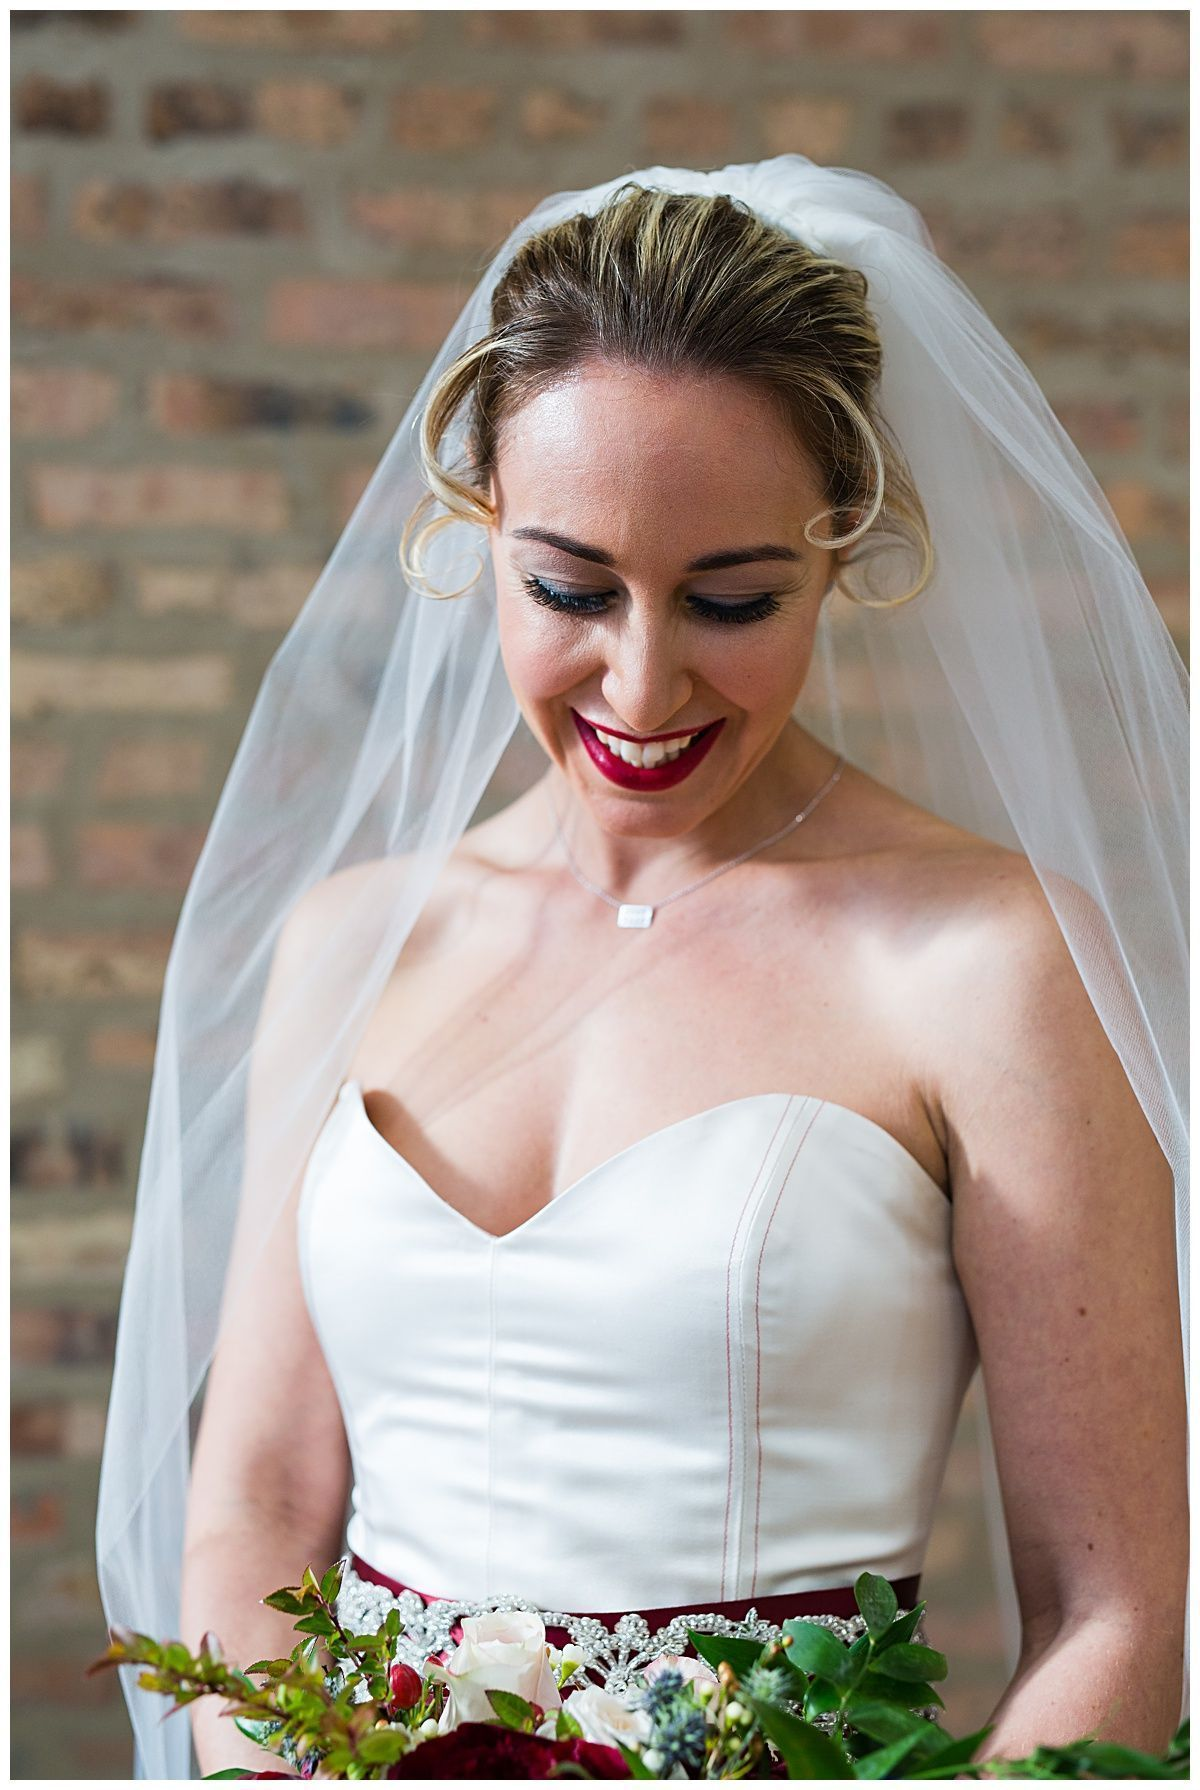 Chicago Cubs Styled Wedding Hair And Makeup By Meghana Prasad Bridal Artist Www